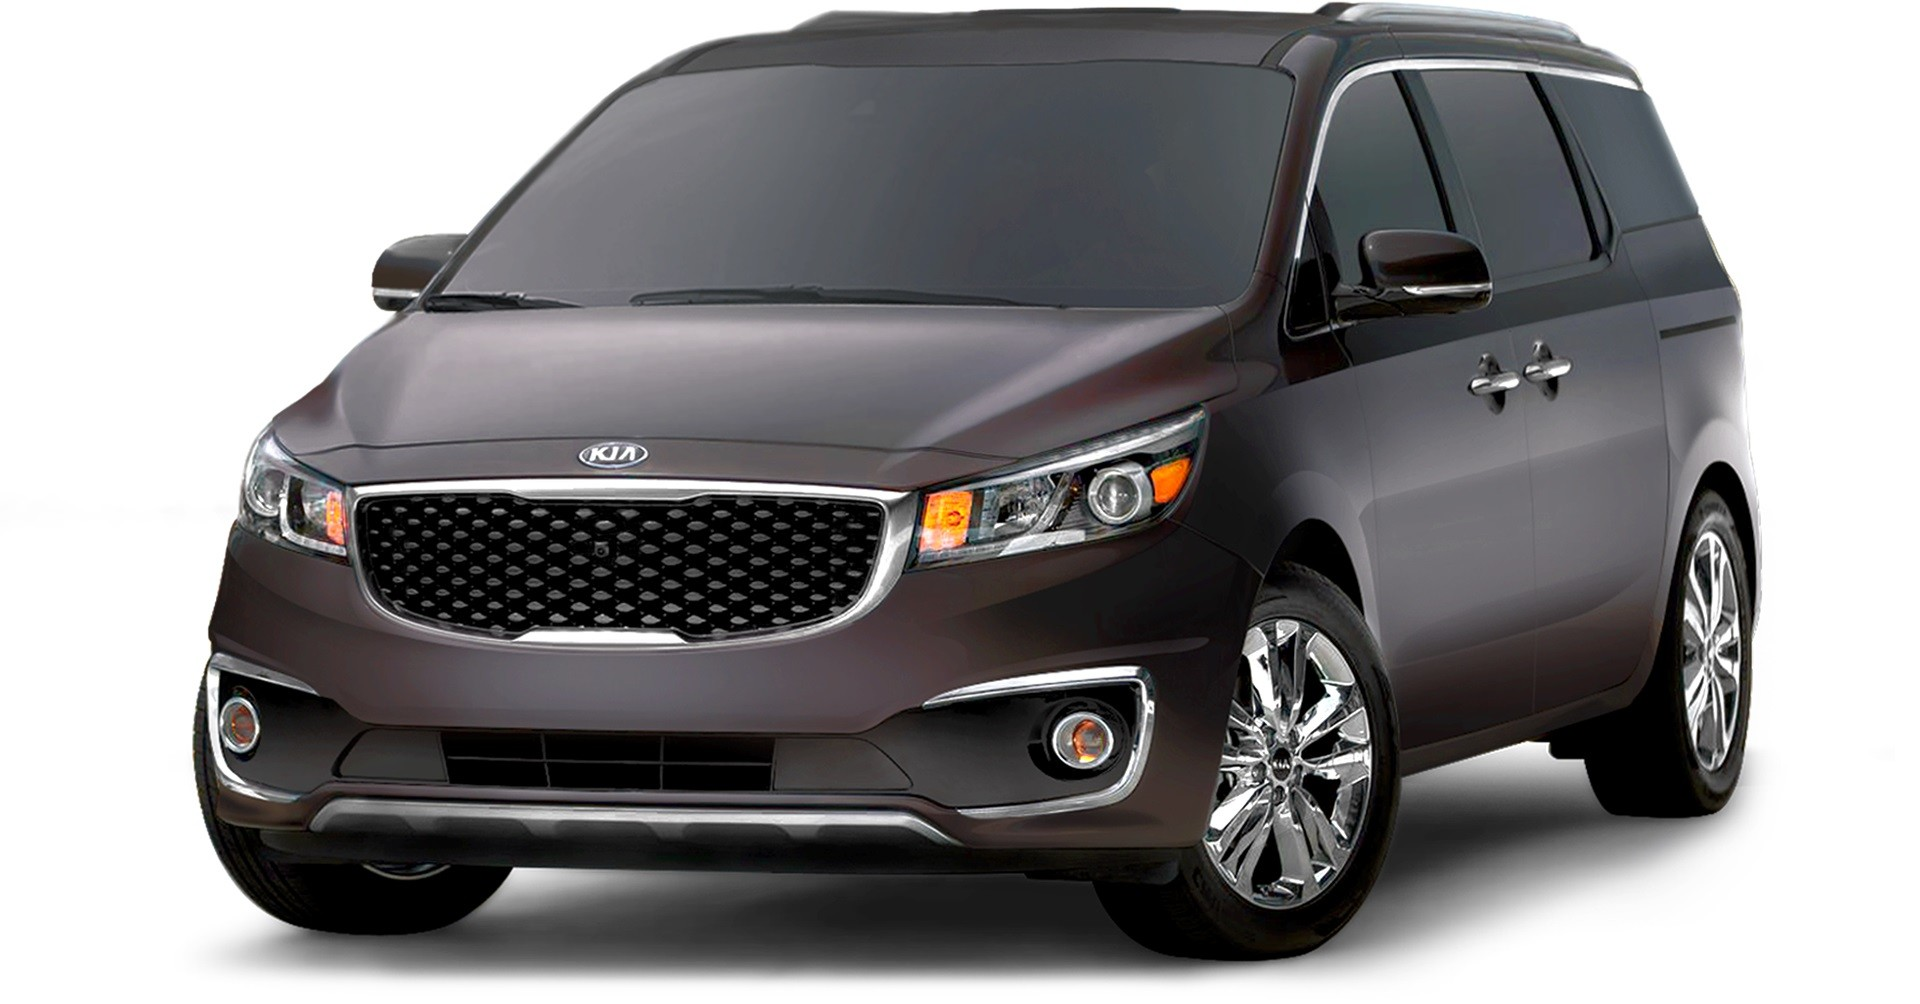 2015 Kia Sedona for Sale near Tacoma at Kia of Puyallup